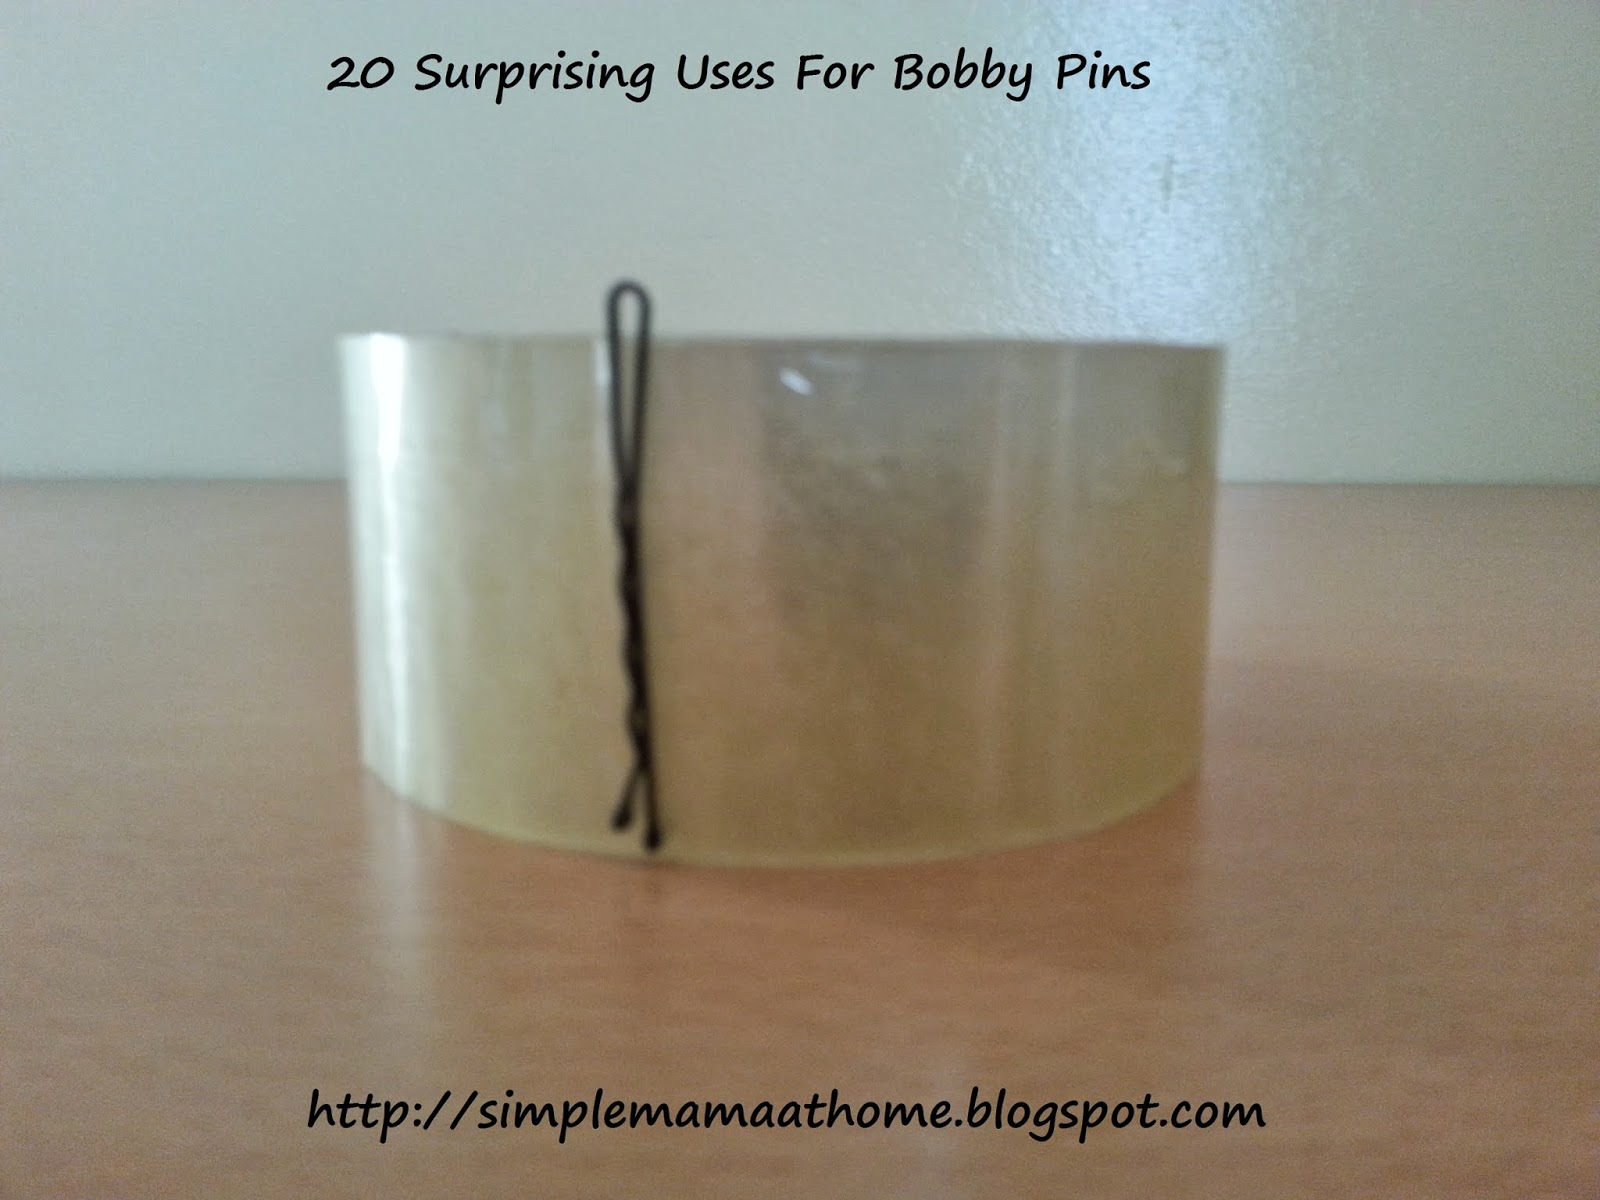 20 Surprising Uses For Bobby Pins